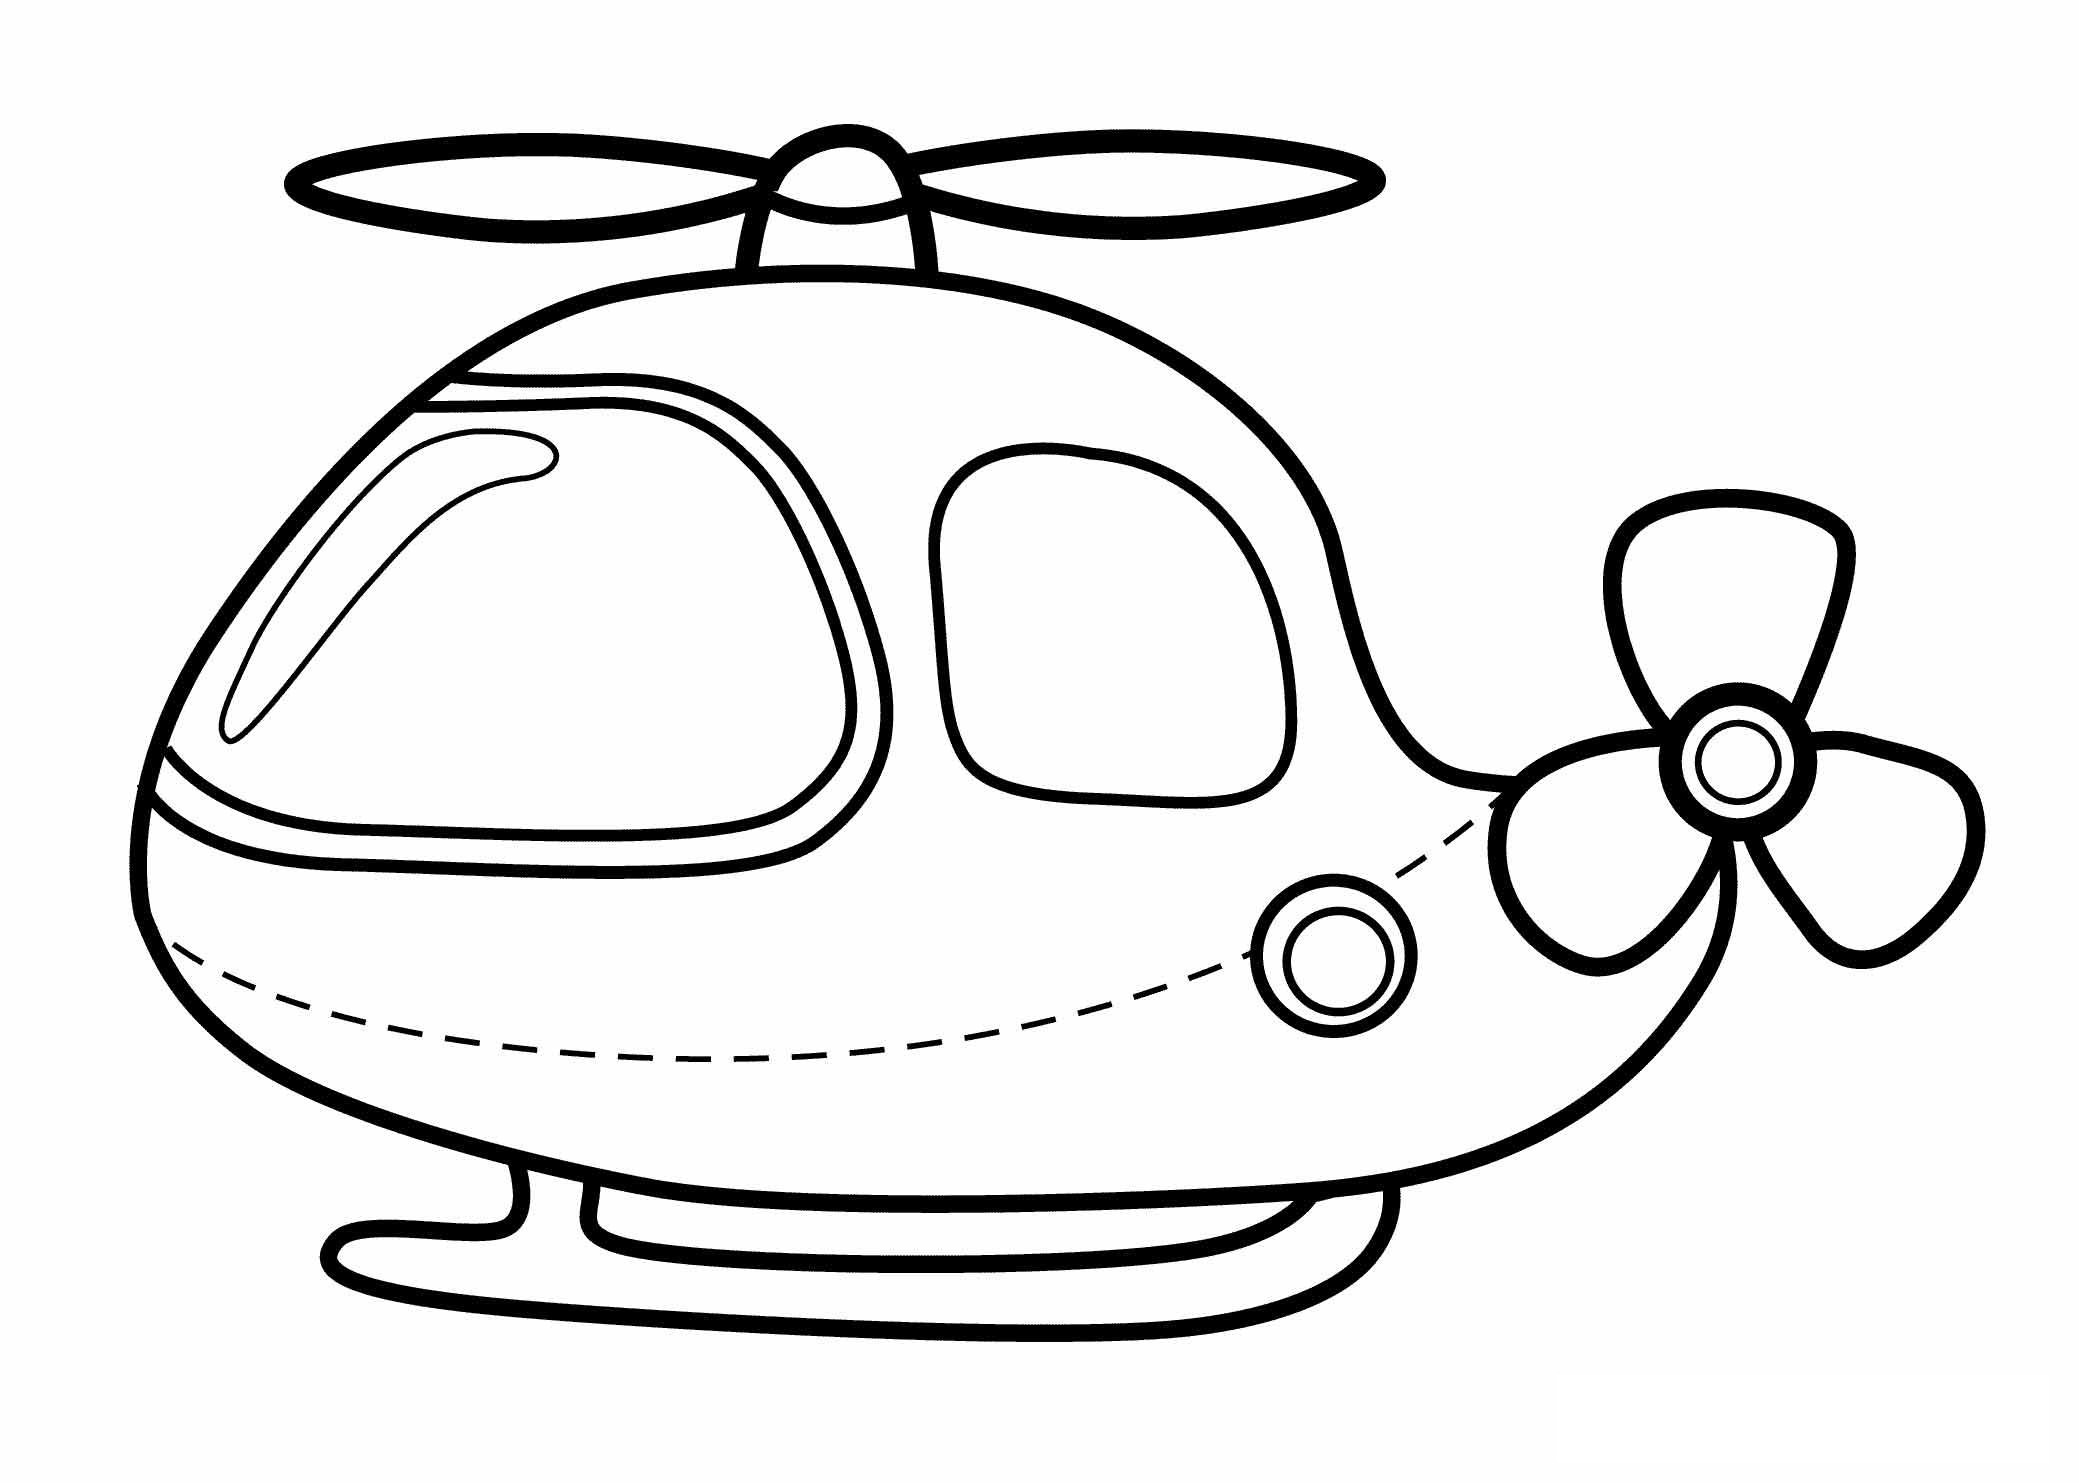 2079x1483 Free Printable Helicopter Coloring Pages For Kids